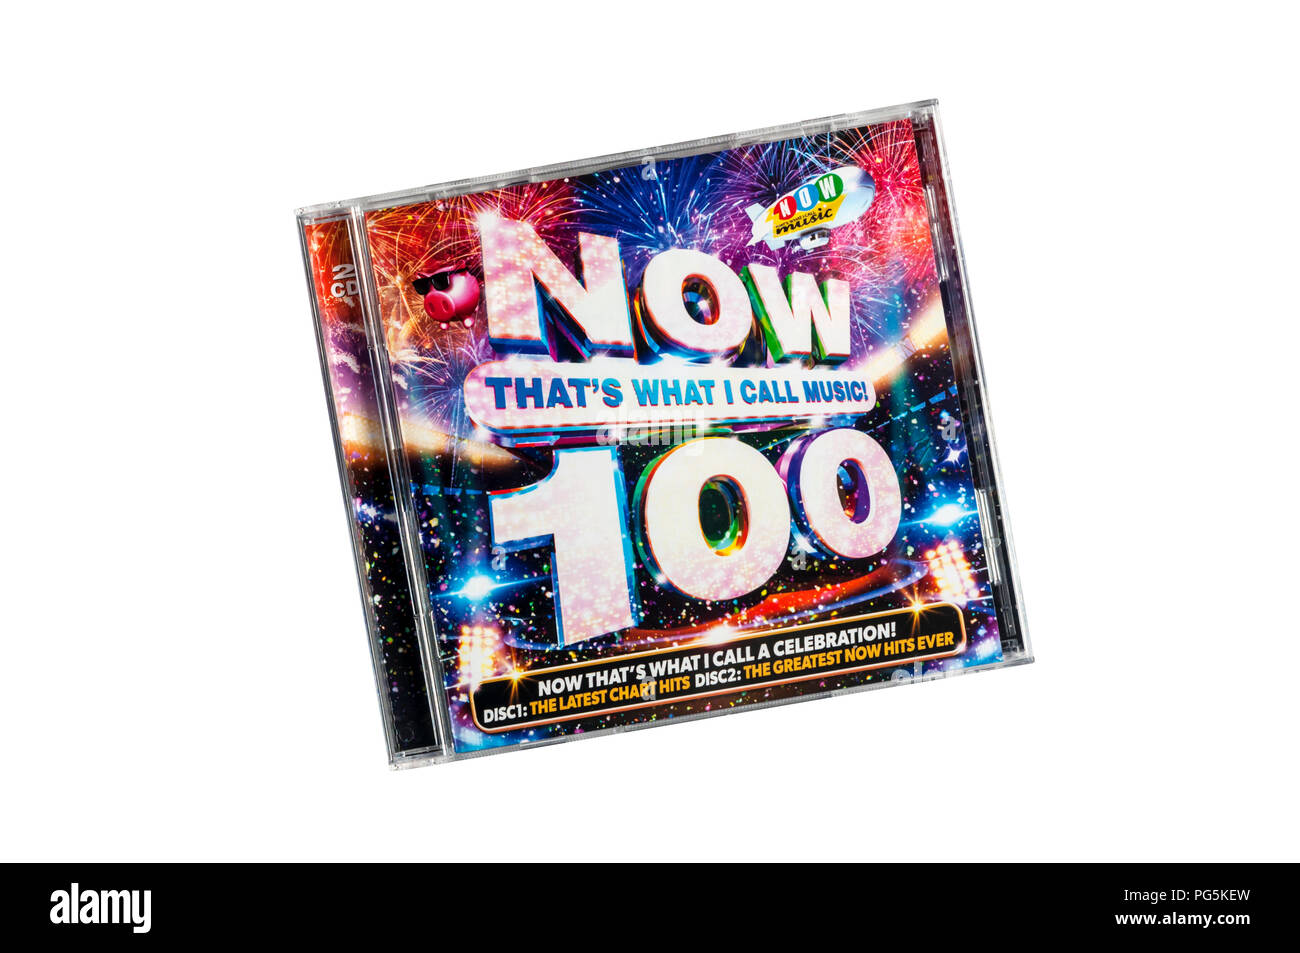 Now That's What I Call Music 100 was released in July 2018. - Stock Image